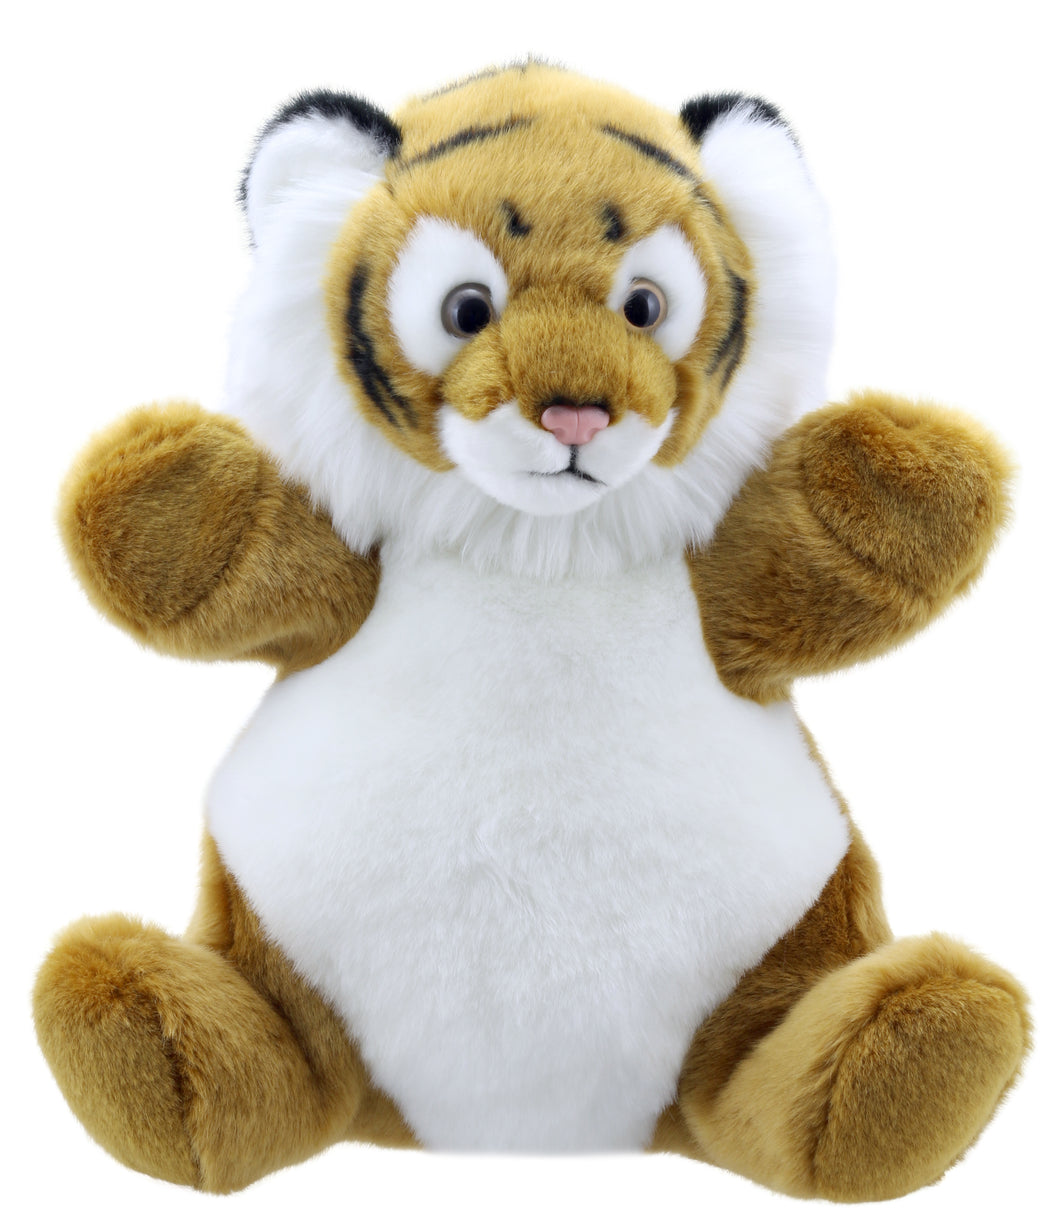 P110-PC009513-marionnette-Tigre-The-Puppet-Company-Cuddly-Tumms